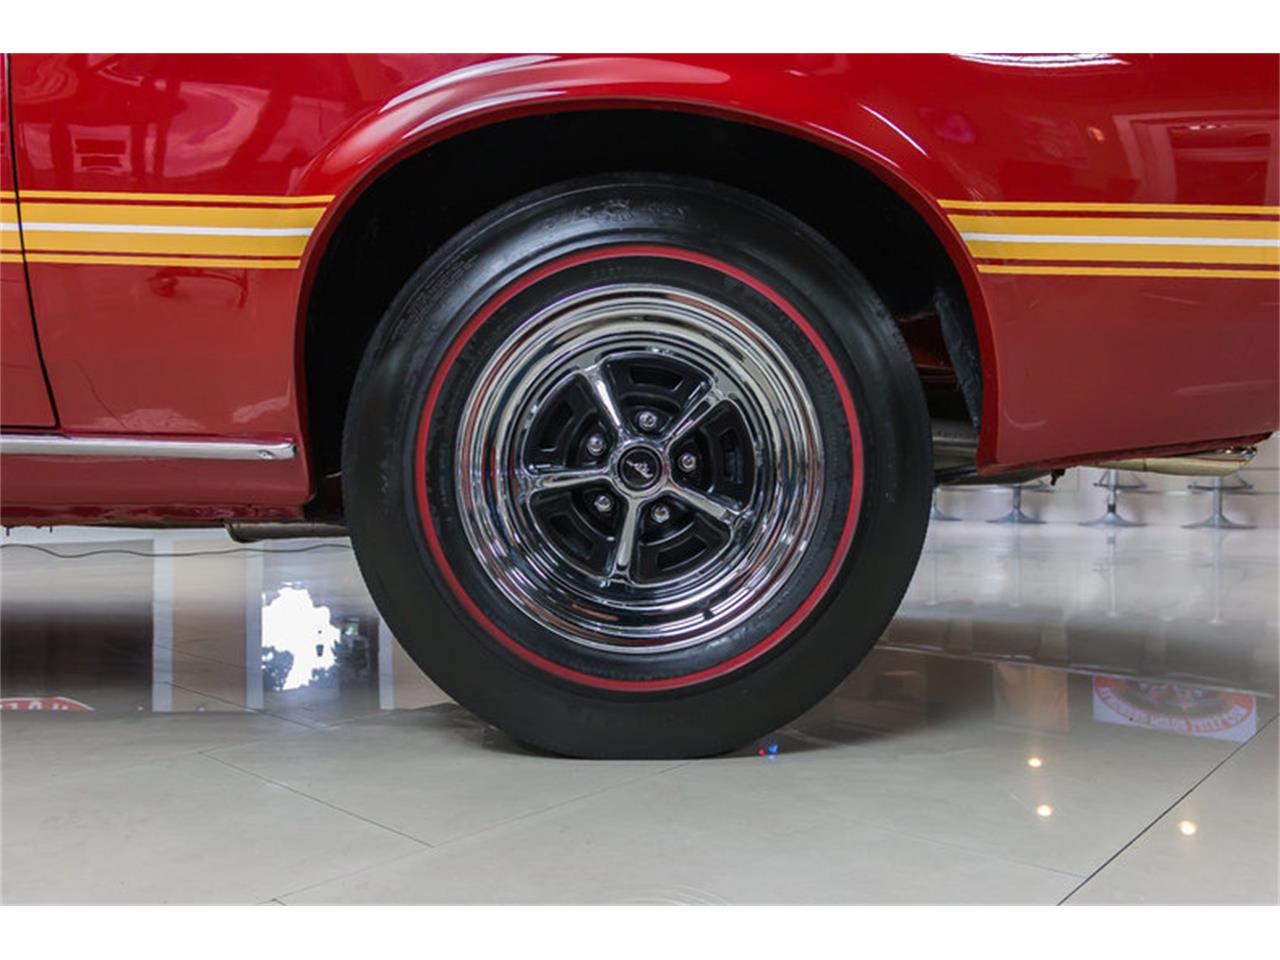 Large Picture of '69 Ford Mustang Mach 1 S Code located in Plymouth Michigan - $59,900.00 Offered by Vanguard Motor Sales - IS3G